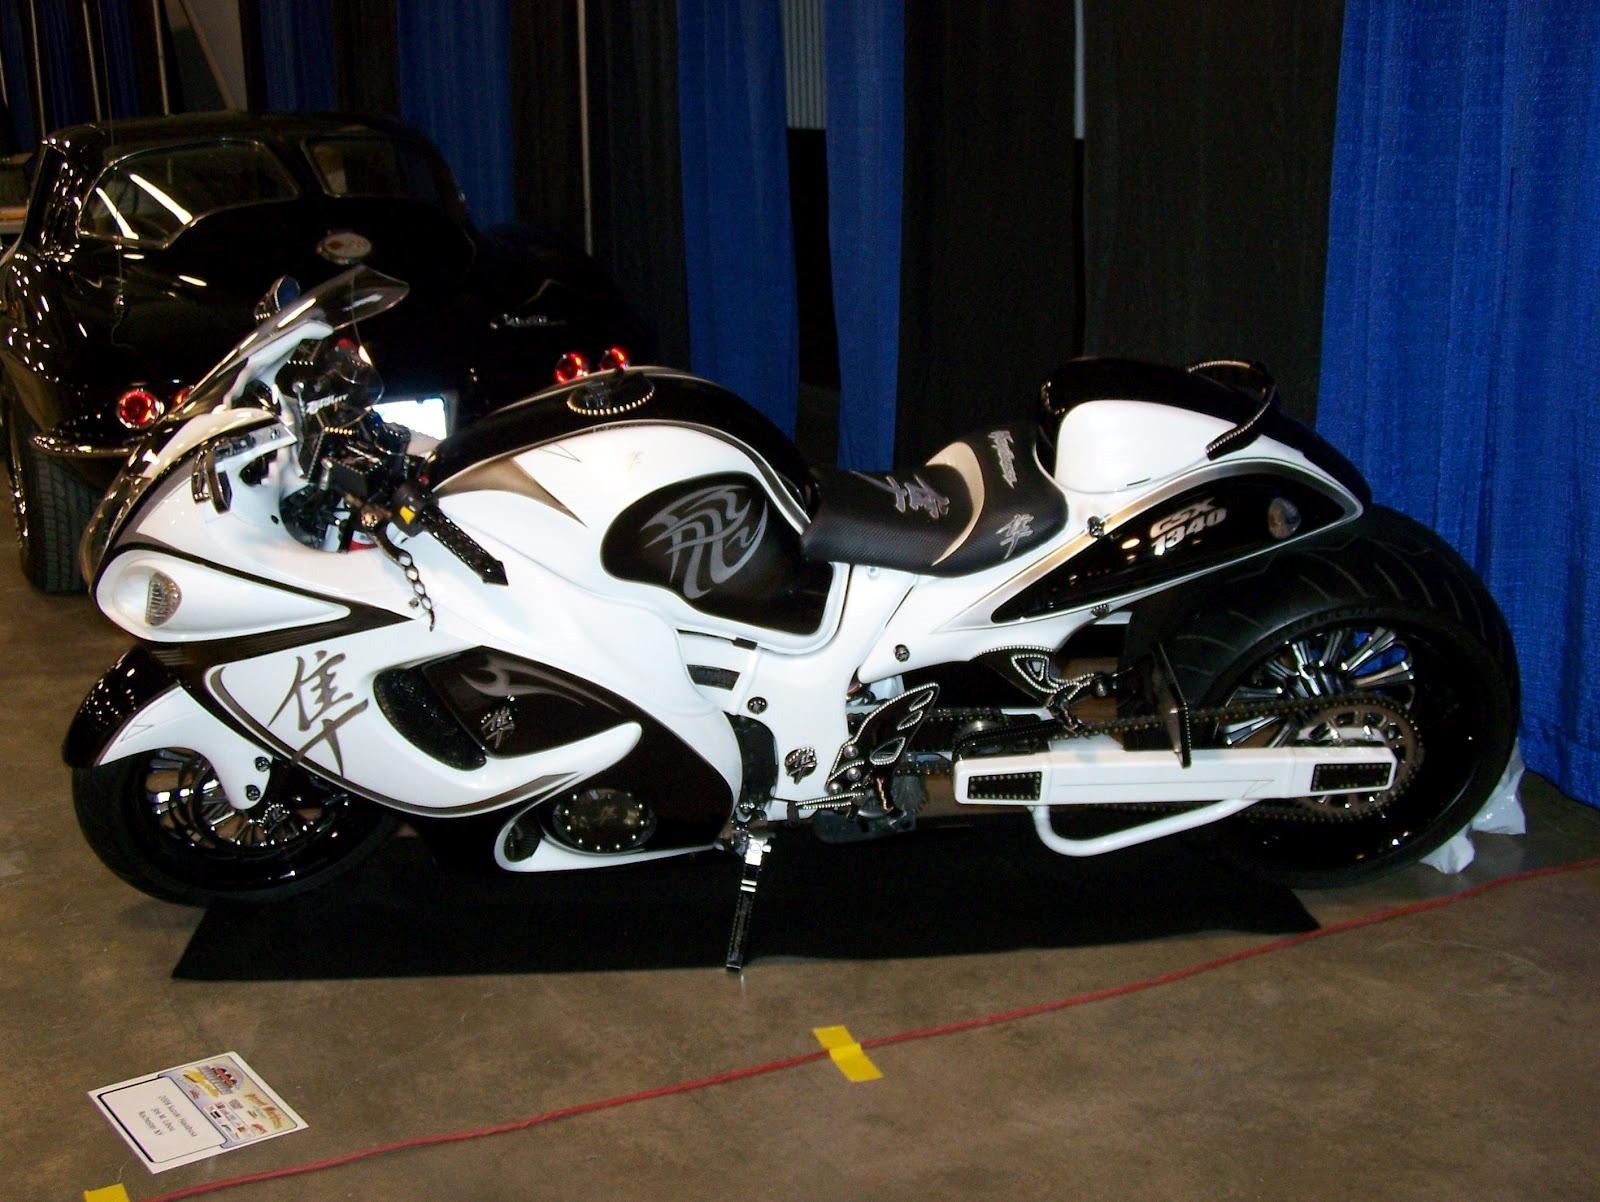 Suzuki Hayabusa For Sale On Craigslist